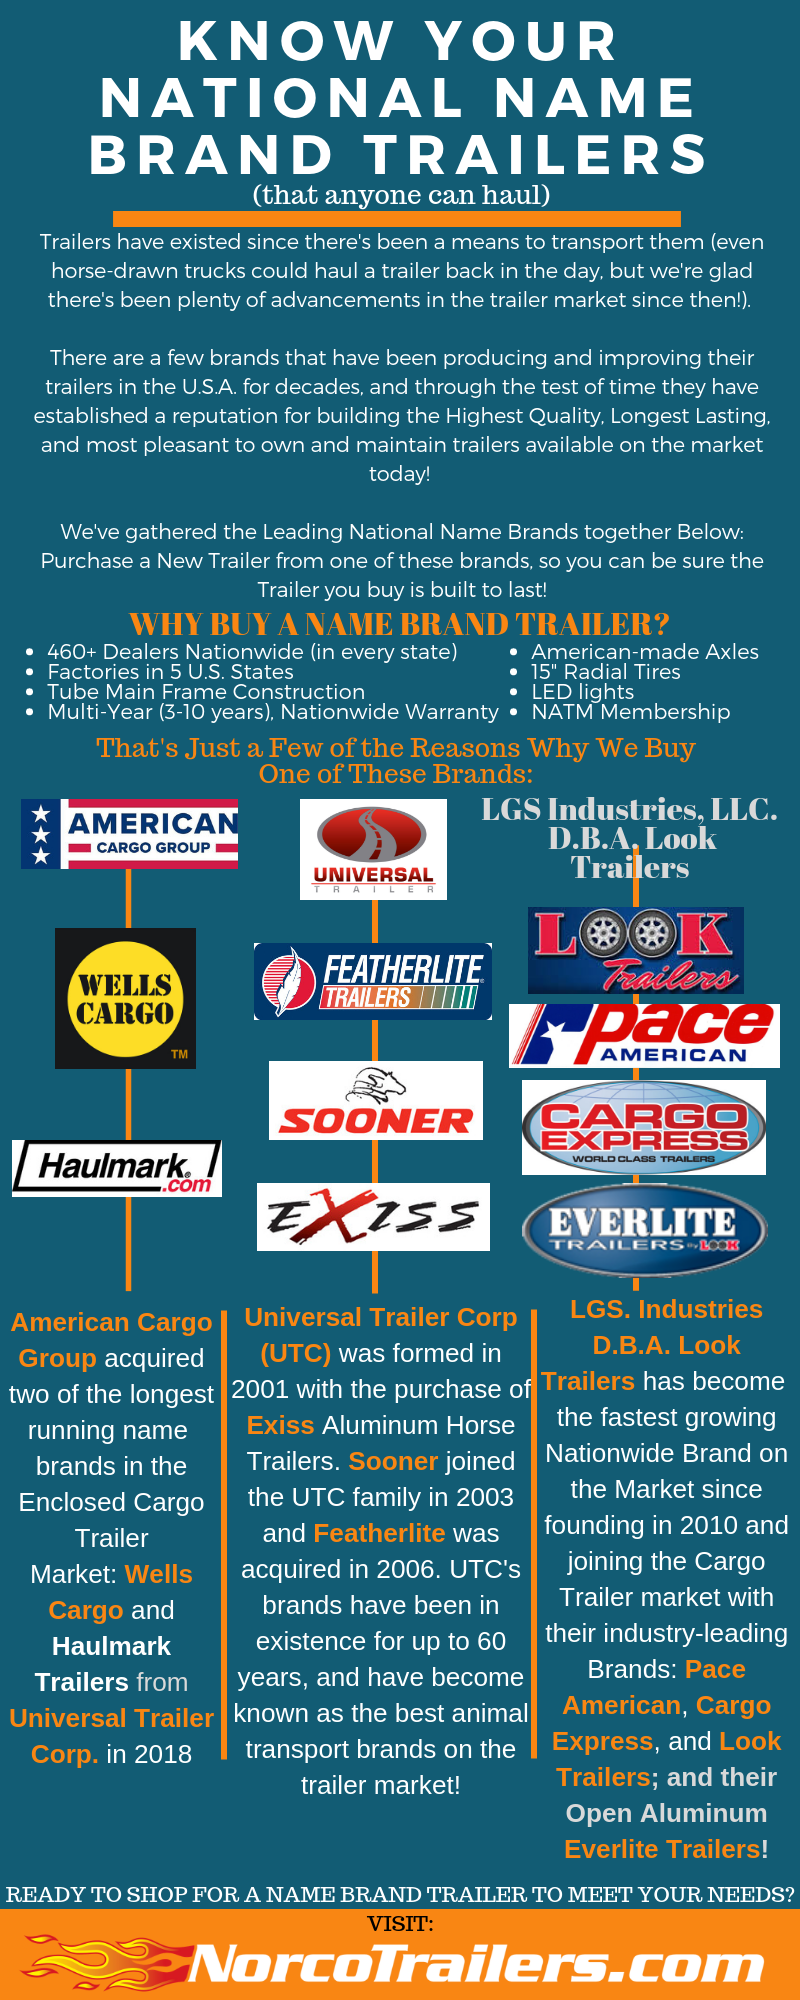 National Name Brand Trailers Anyone With a Driver's license can tow. Non-commercial trailer brands in every state